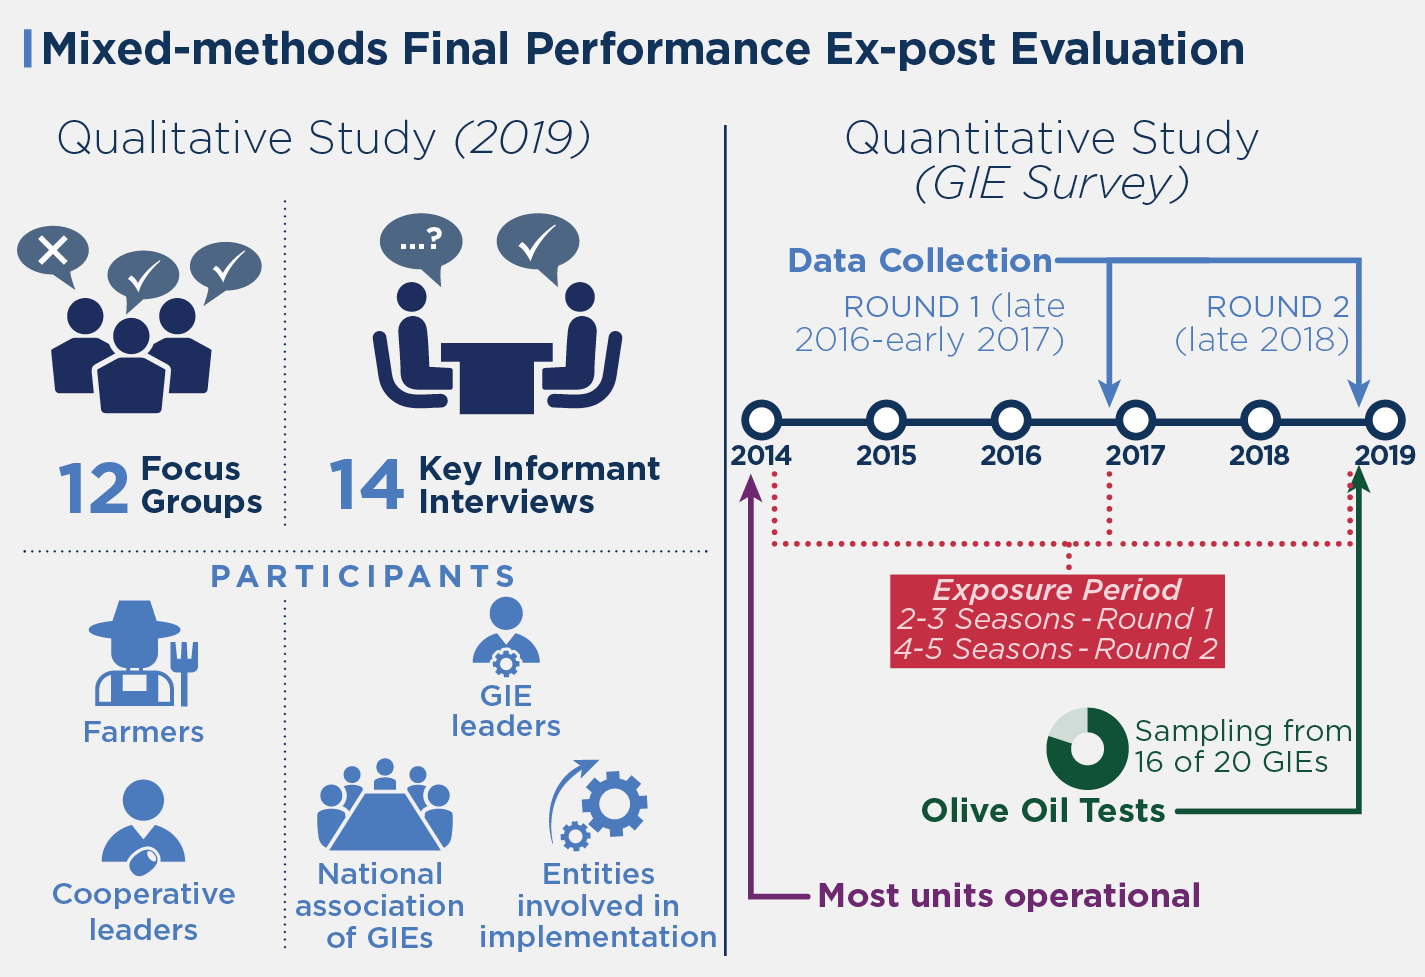 Methodology and data collection details